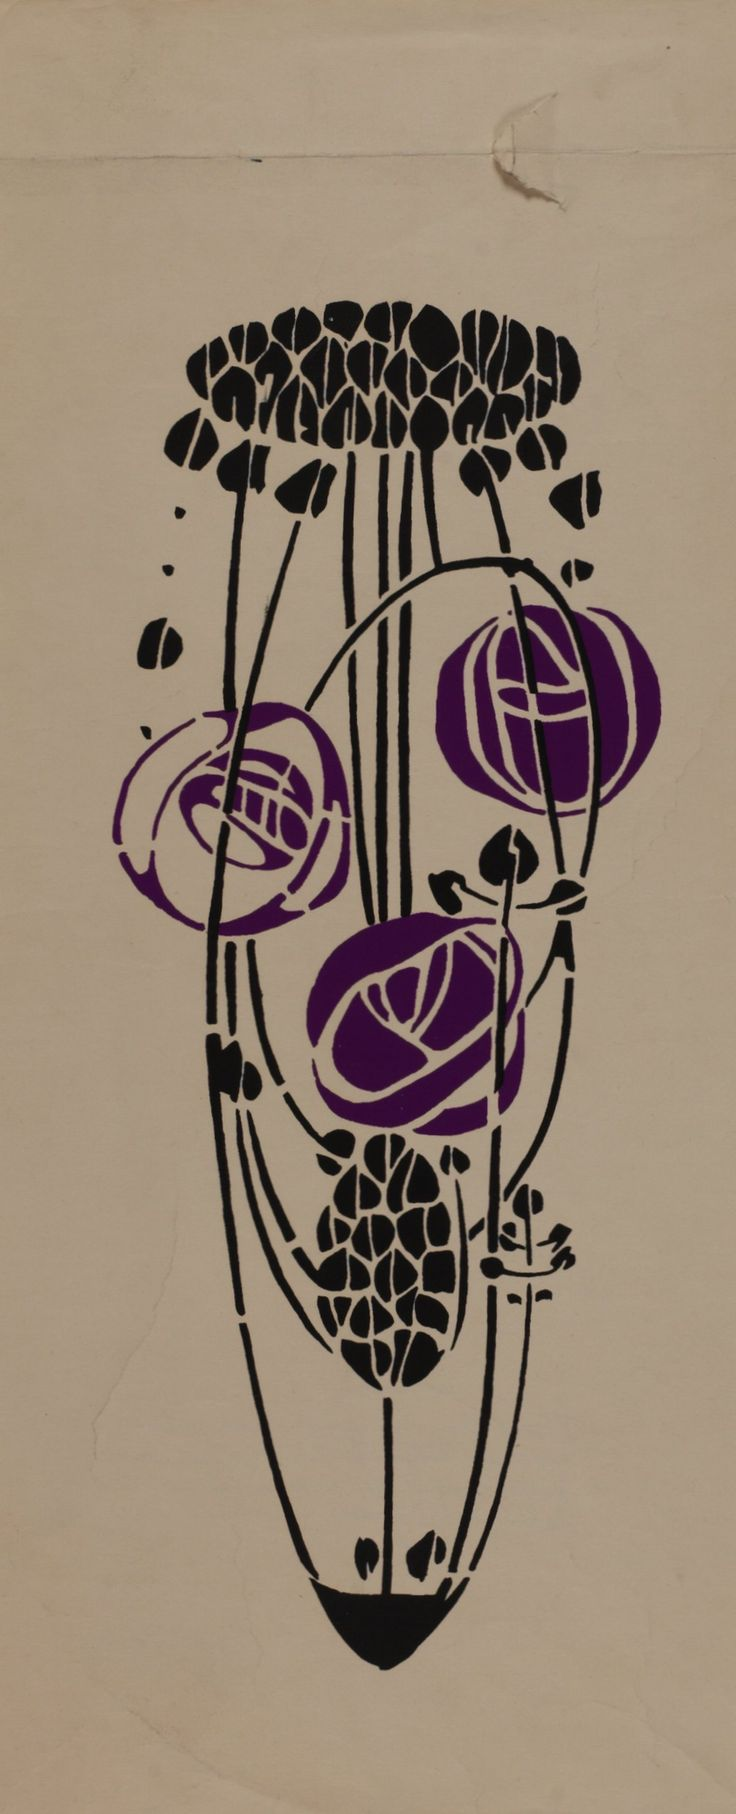 ¤ Trial in black and purple of stencil related to the stencilled back of the armchair, designed by Charles Rennie Mackintosh for the 'Rose Boudoir', Modern Decorative Art exhibition, Turin, 1902 Hunterian Art Gallery Mackintosh collections: GLAHA 41334